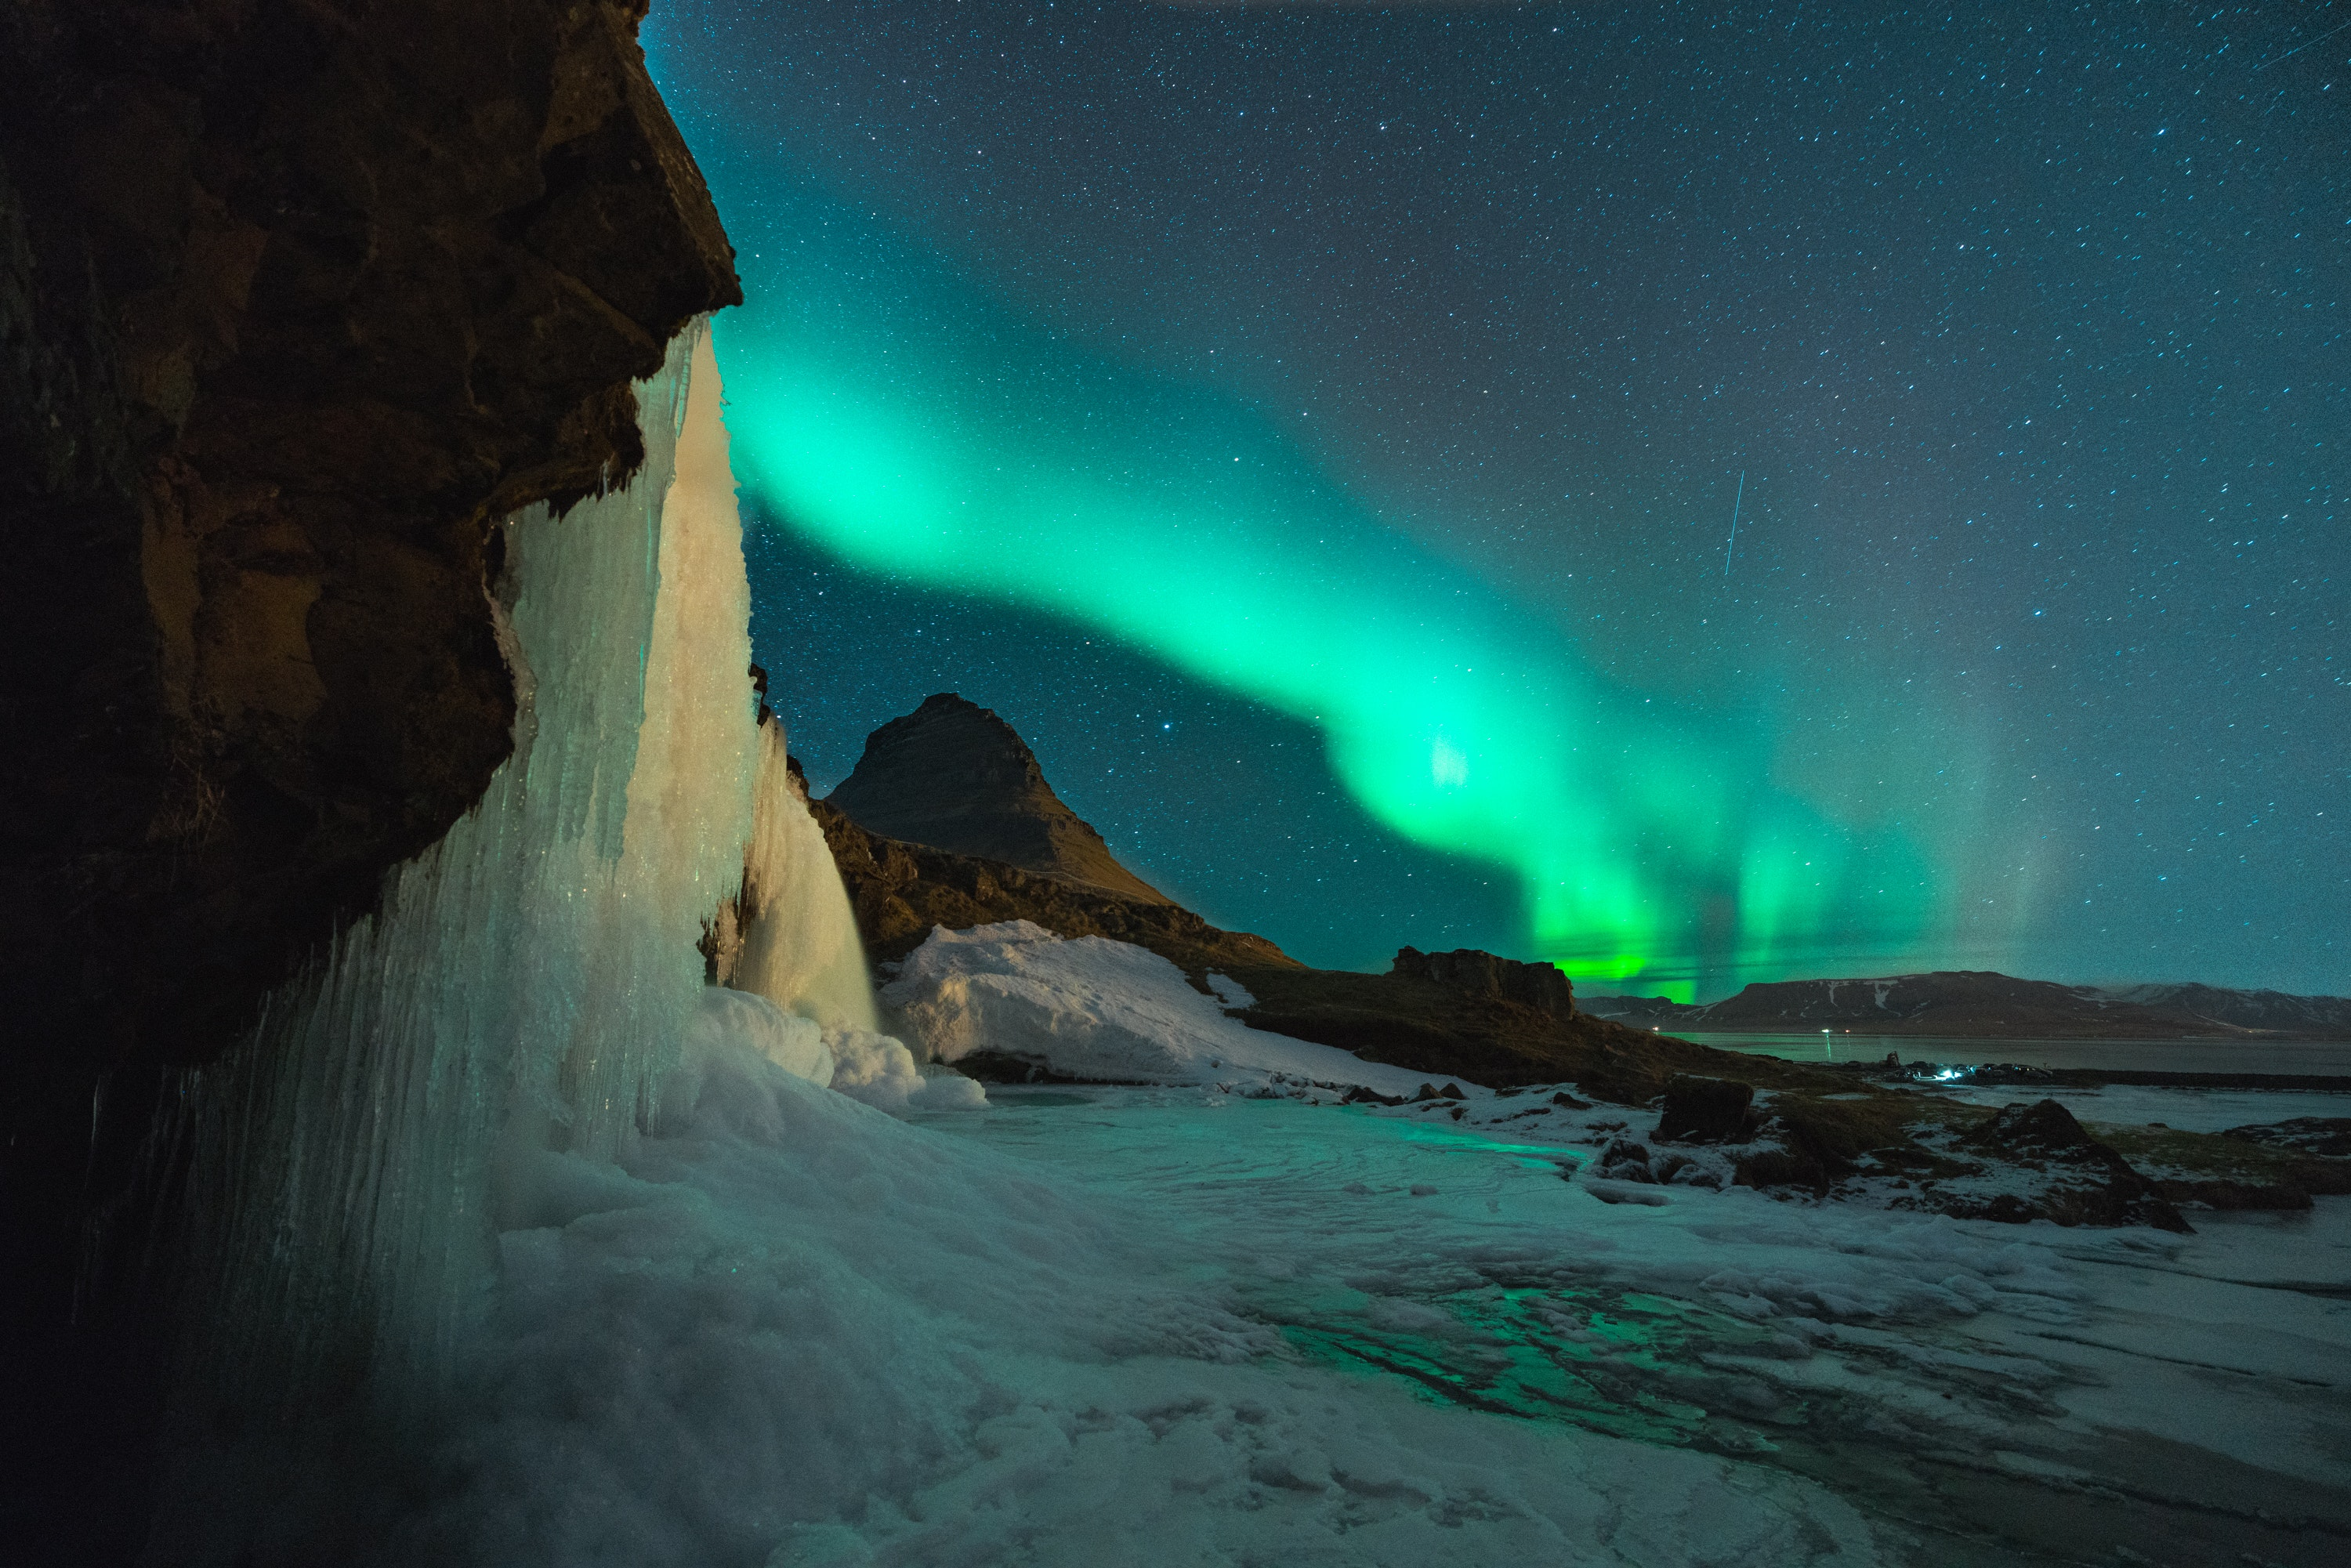 Photo of the Northern Lights in Iceland by Simon Migaj from Pexels